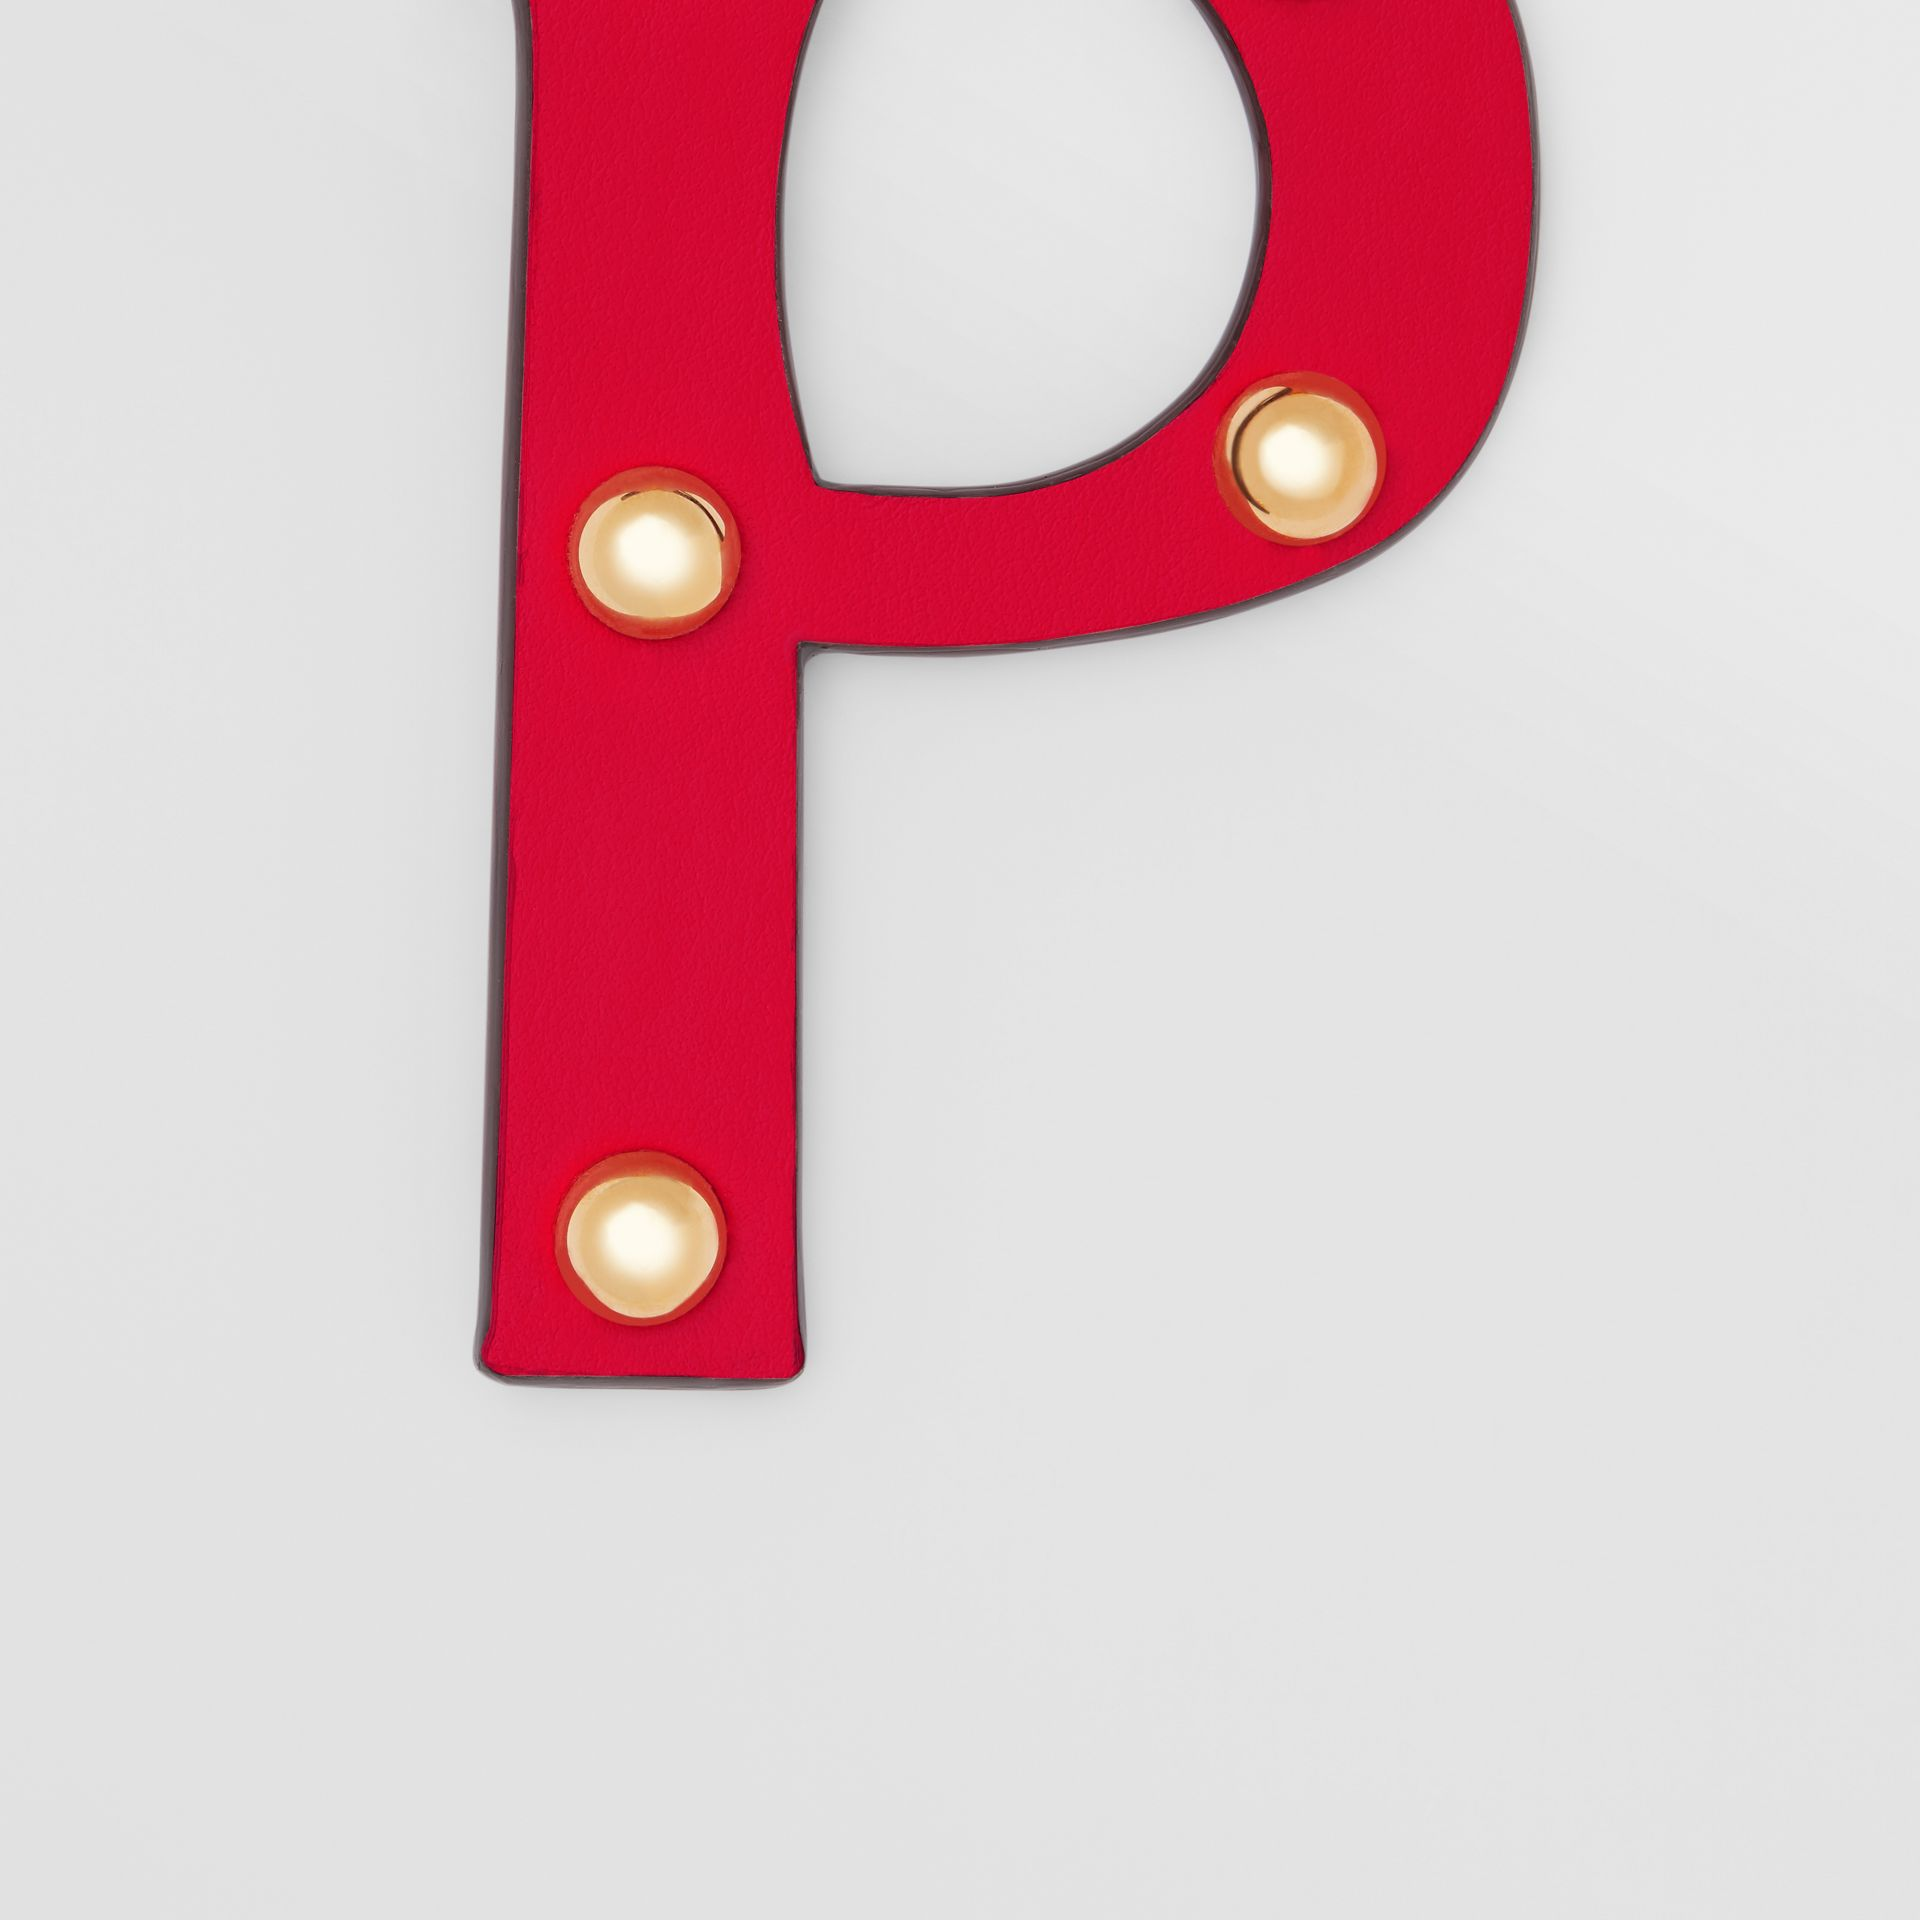 'P' Studded Leather Alphabet Charm in Red/light Gold - Women | Burberry Hong Kong S.A.R - gallery image 1